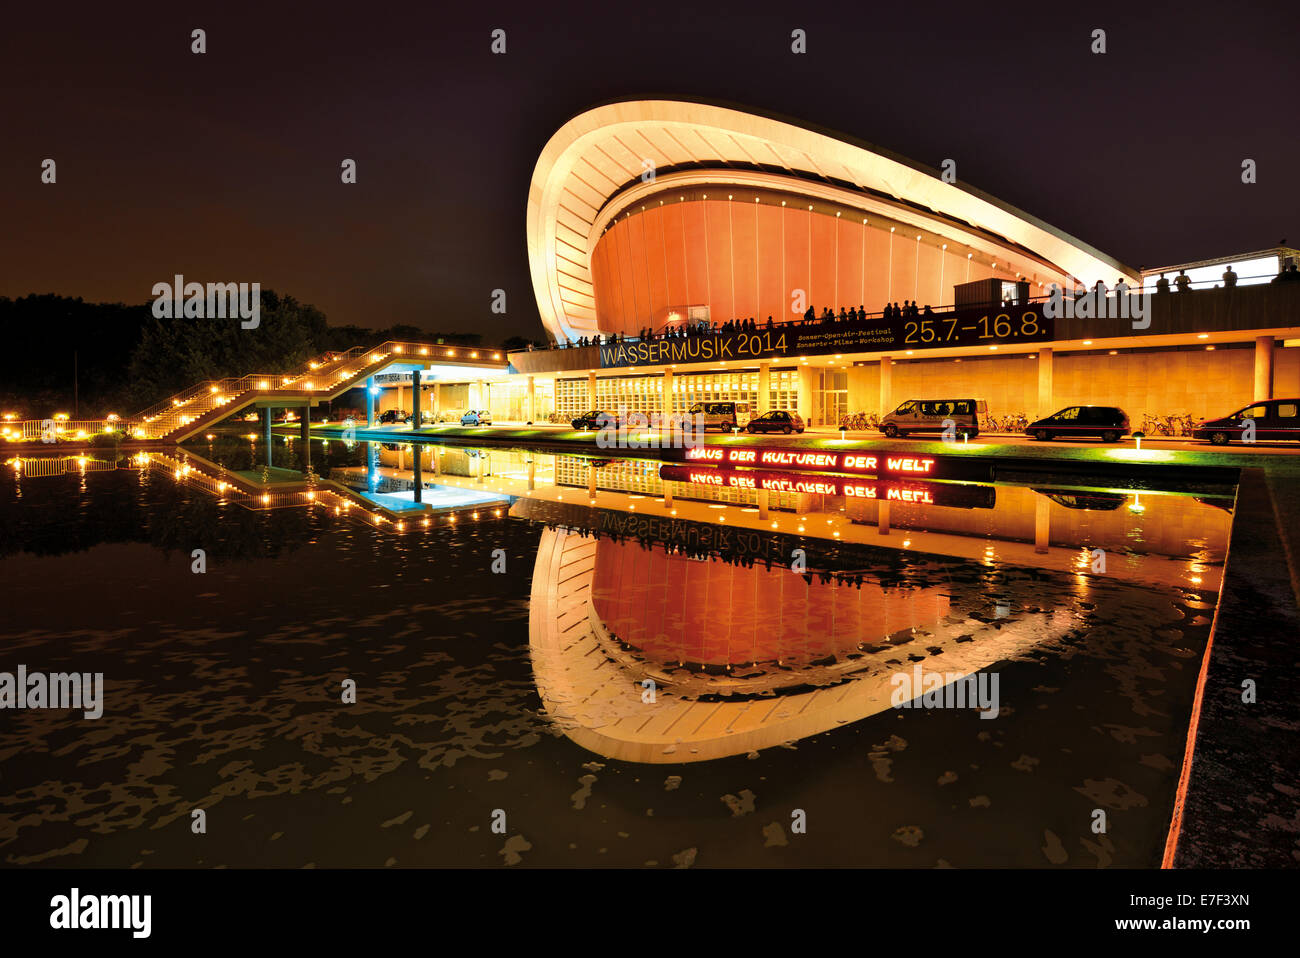 Germany, Berlin: Nocturnal view of the House of the Cultures of the World - Stock Image